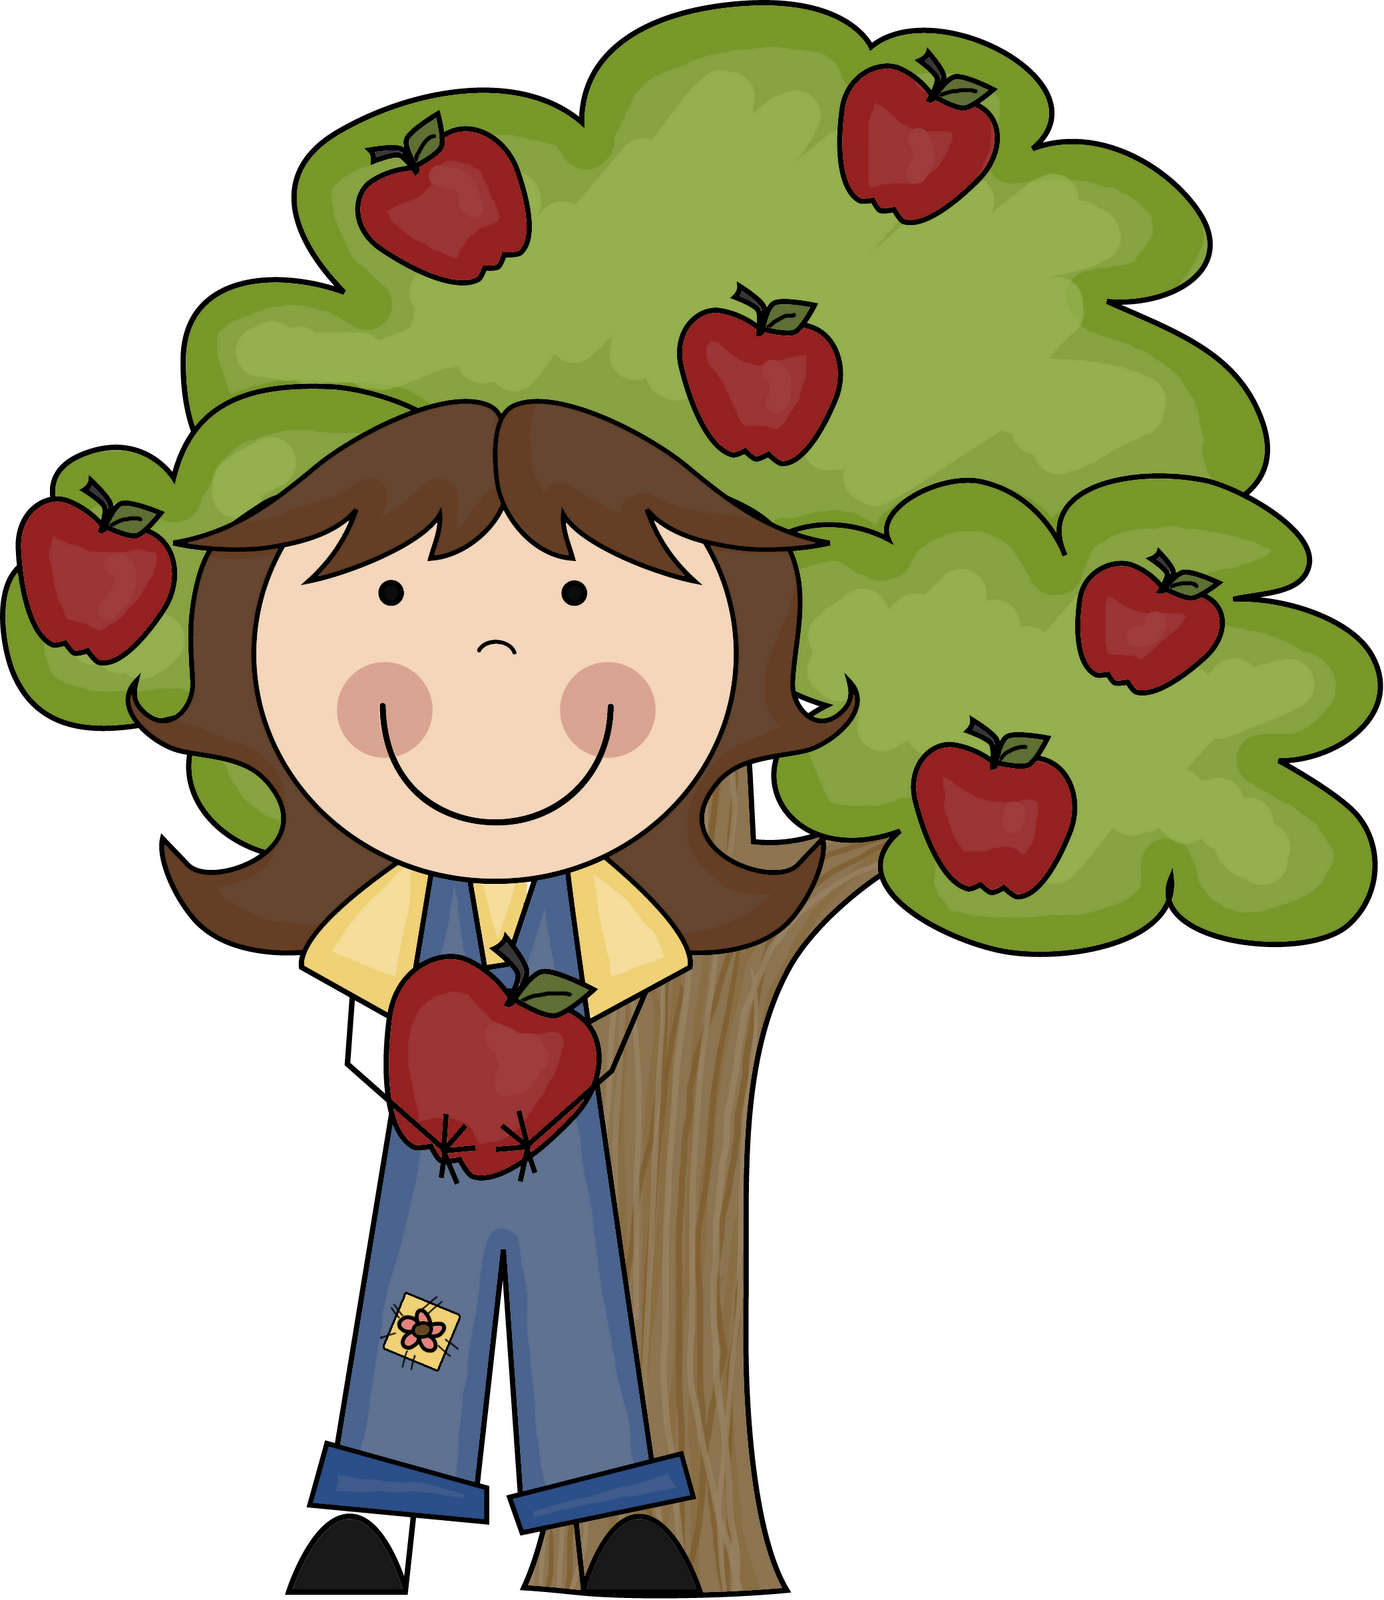 Apple science experiment clipart banner royalty free download First Grade Fanatics: A Week of Apples banner royalty free download